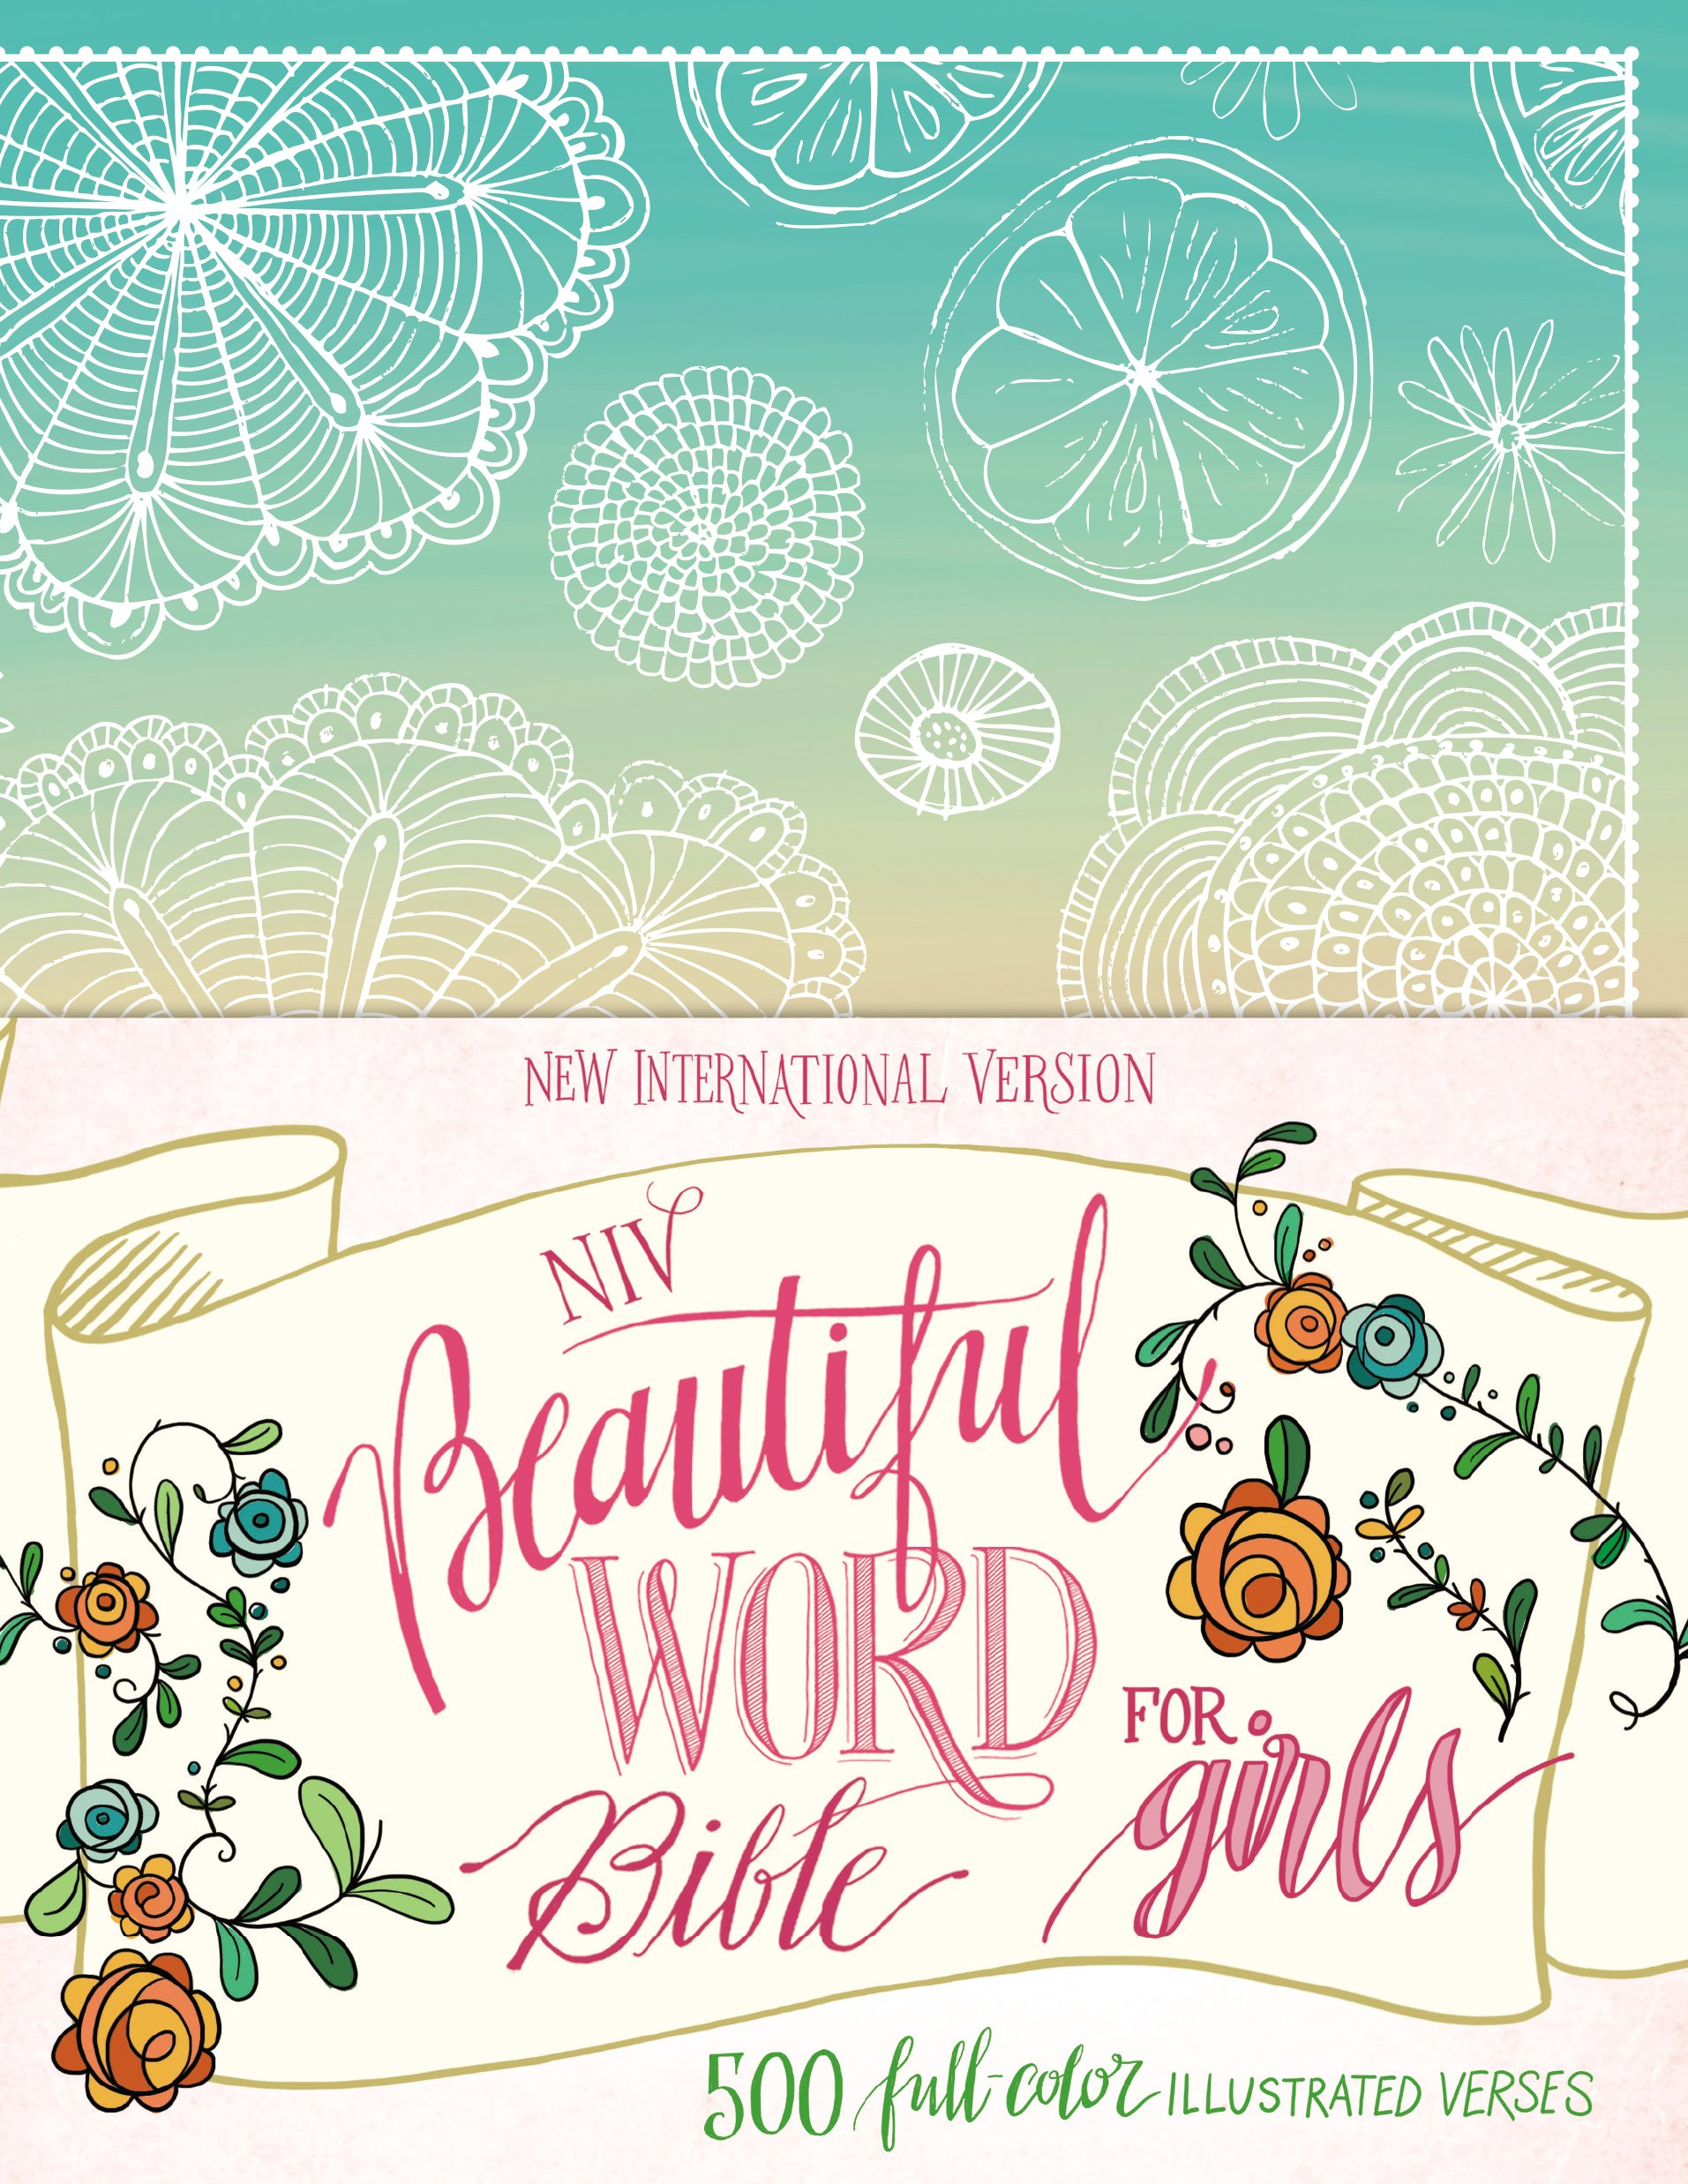 NIV Beautiful Word Bible for Girls, Hardcover, Floral: 500 Full-Color Illustrated Verses by HarperCollins (Image #3)